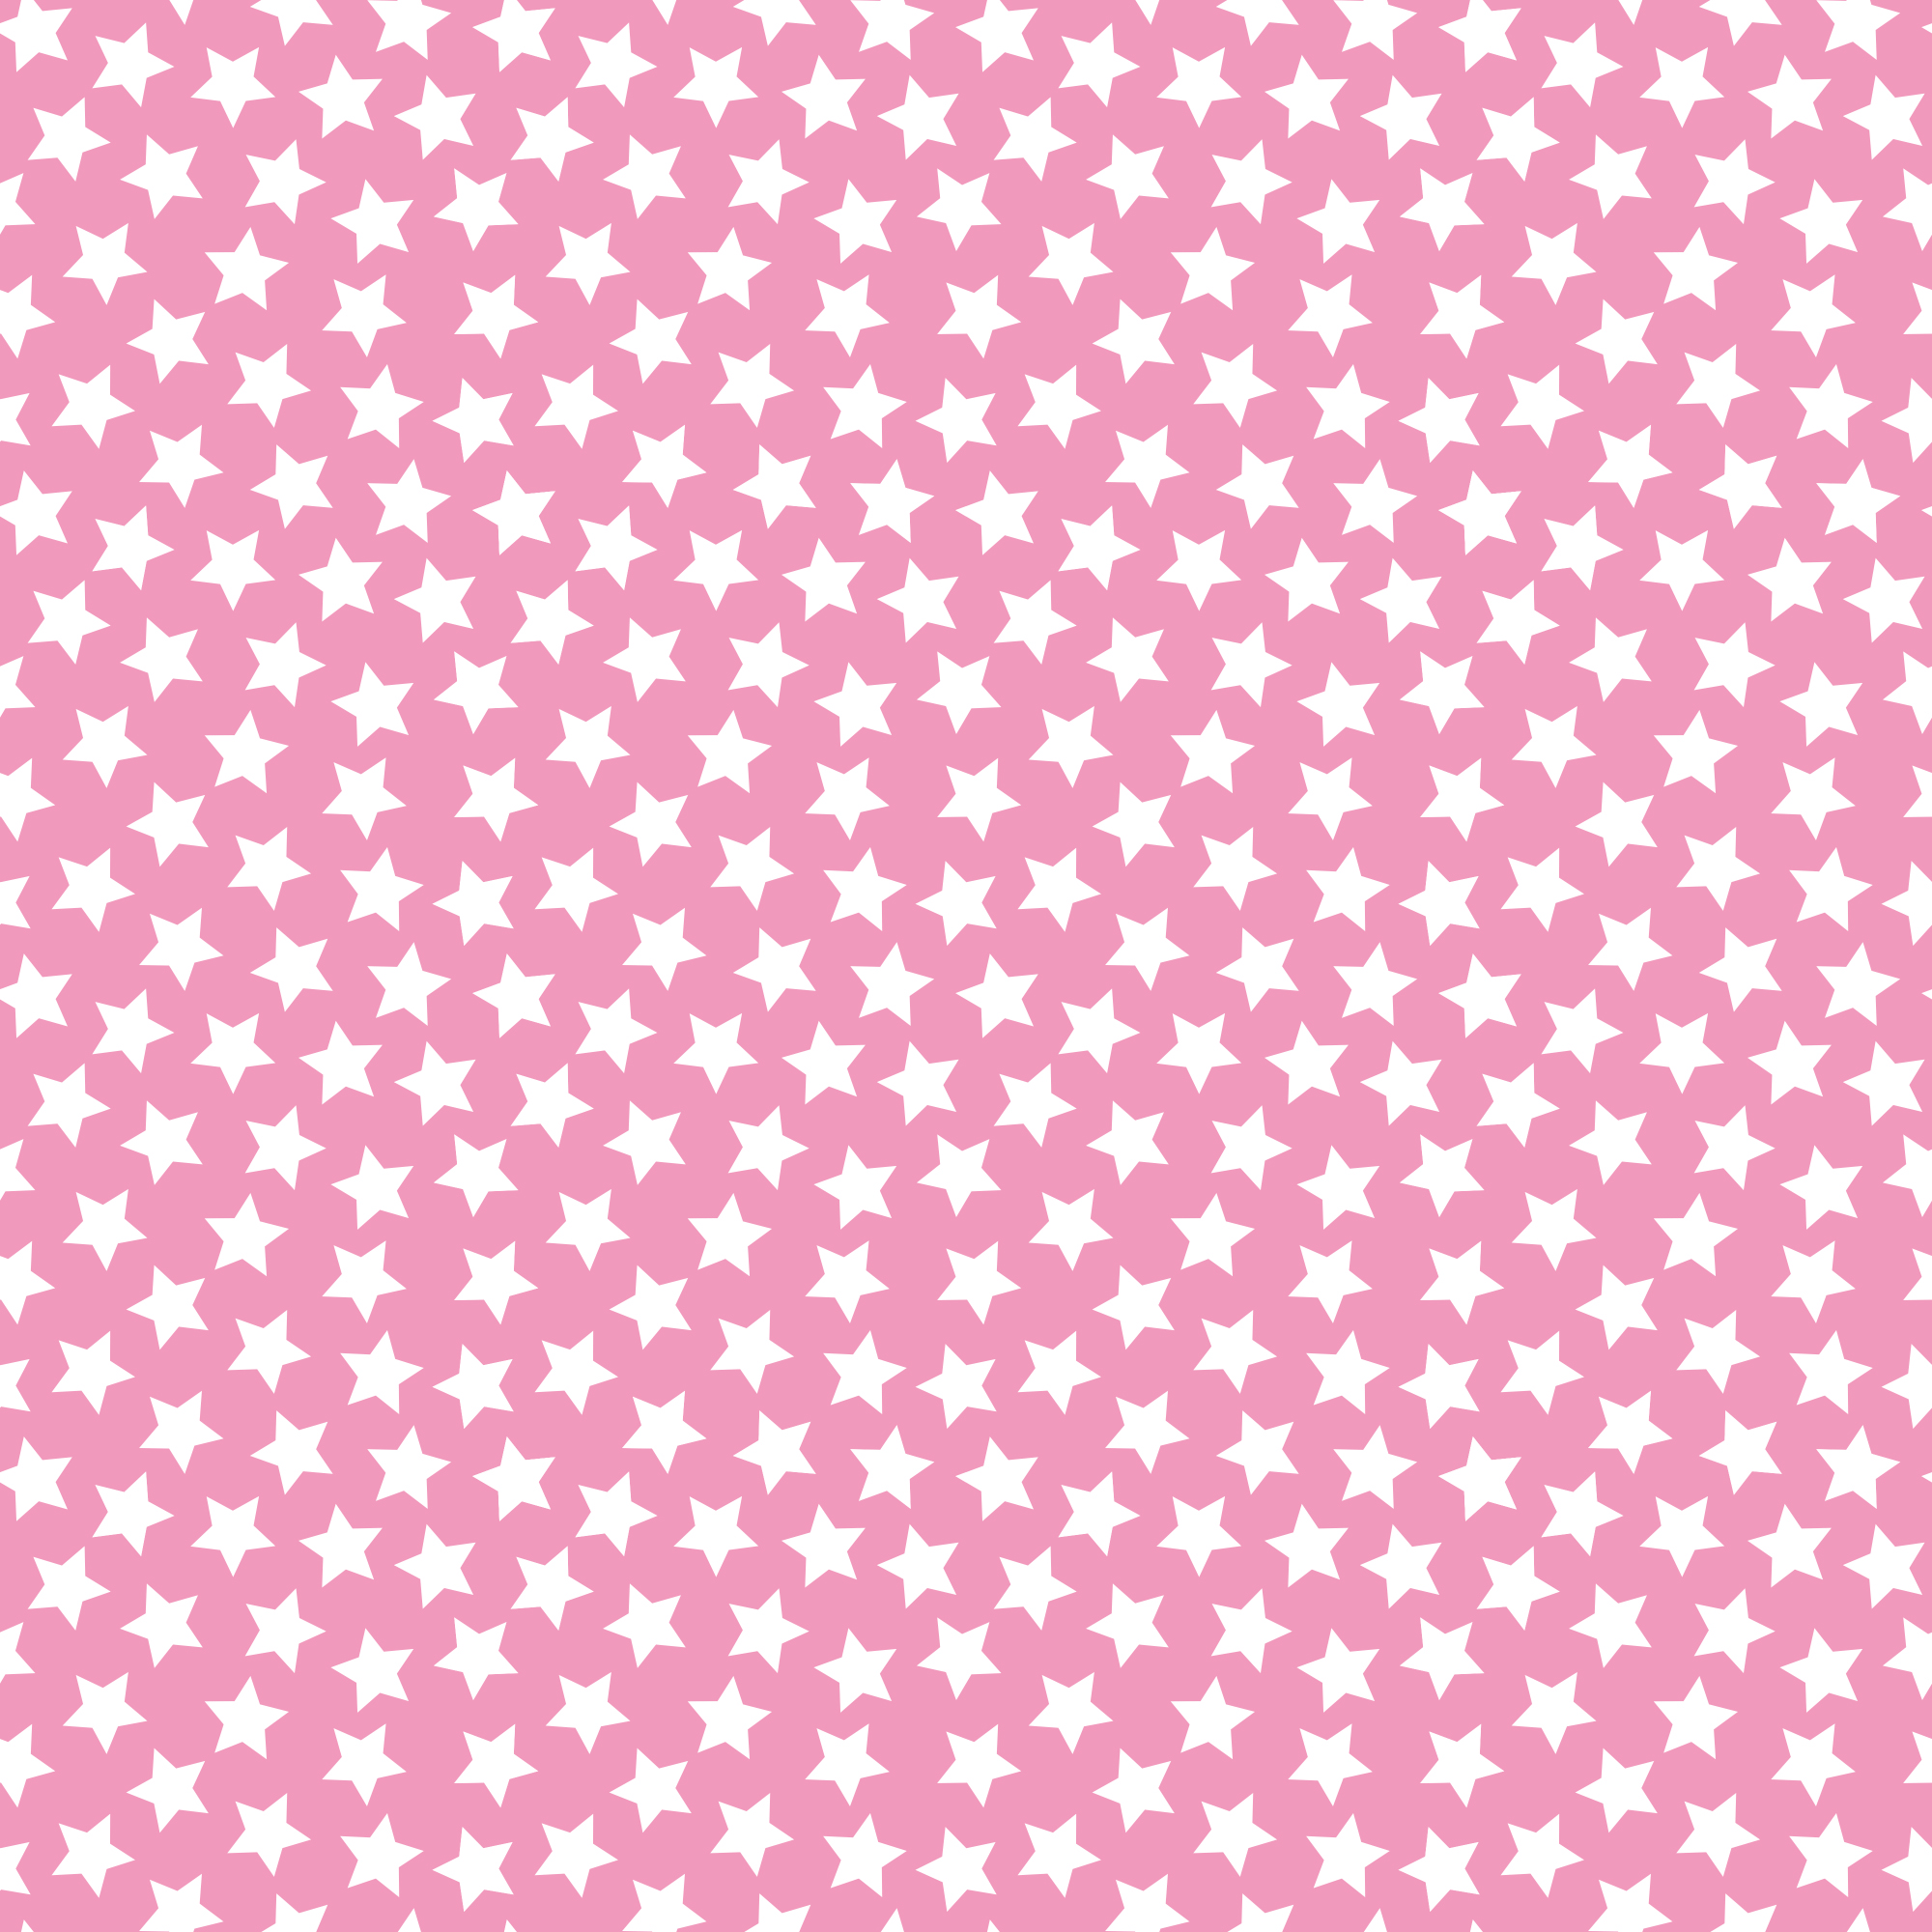 Emma & Mila Flannel Light Pink Stars Fabric, per Yard